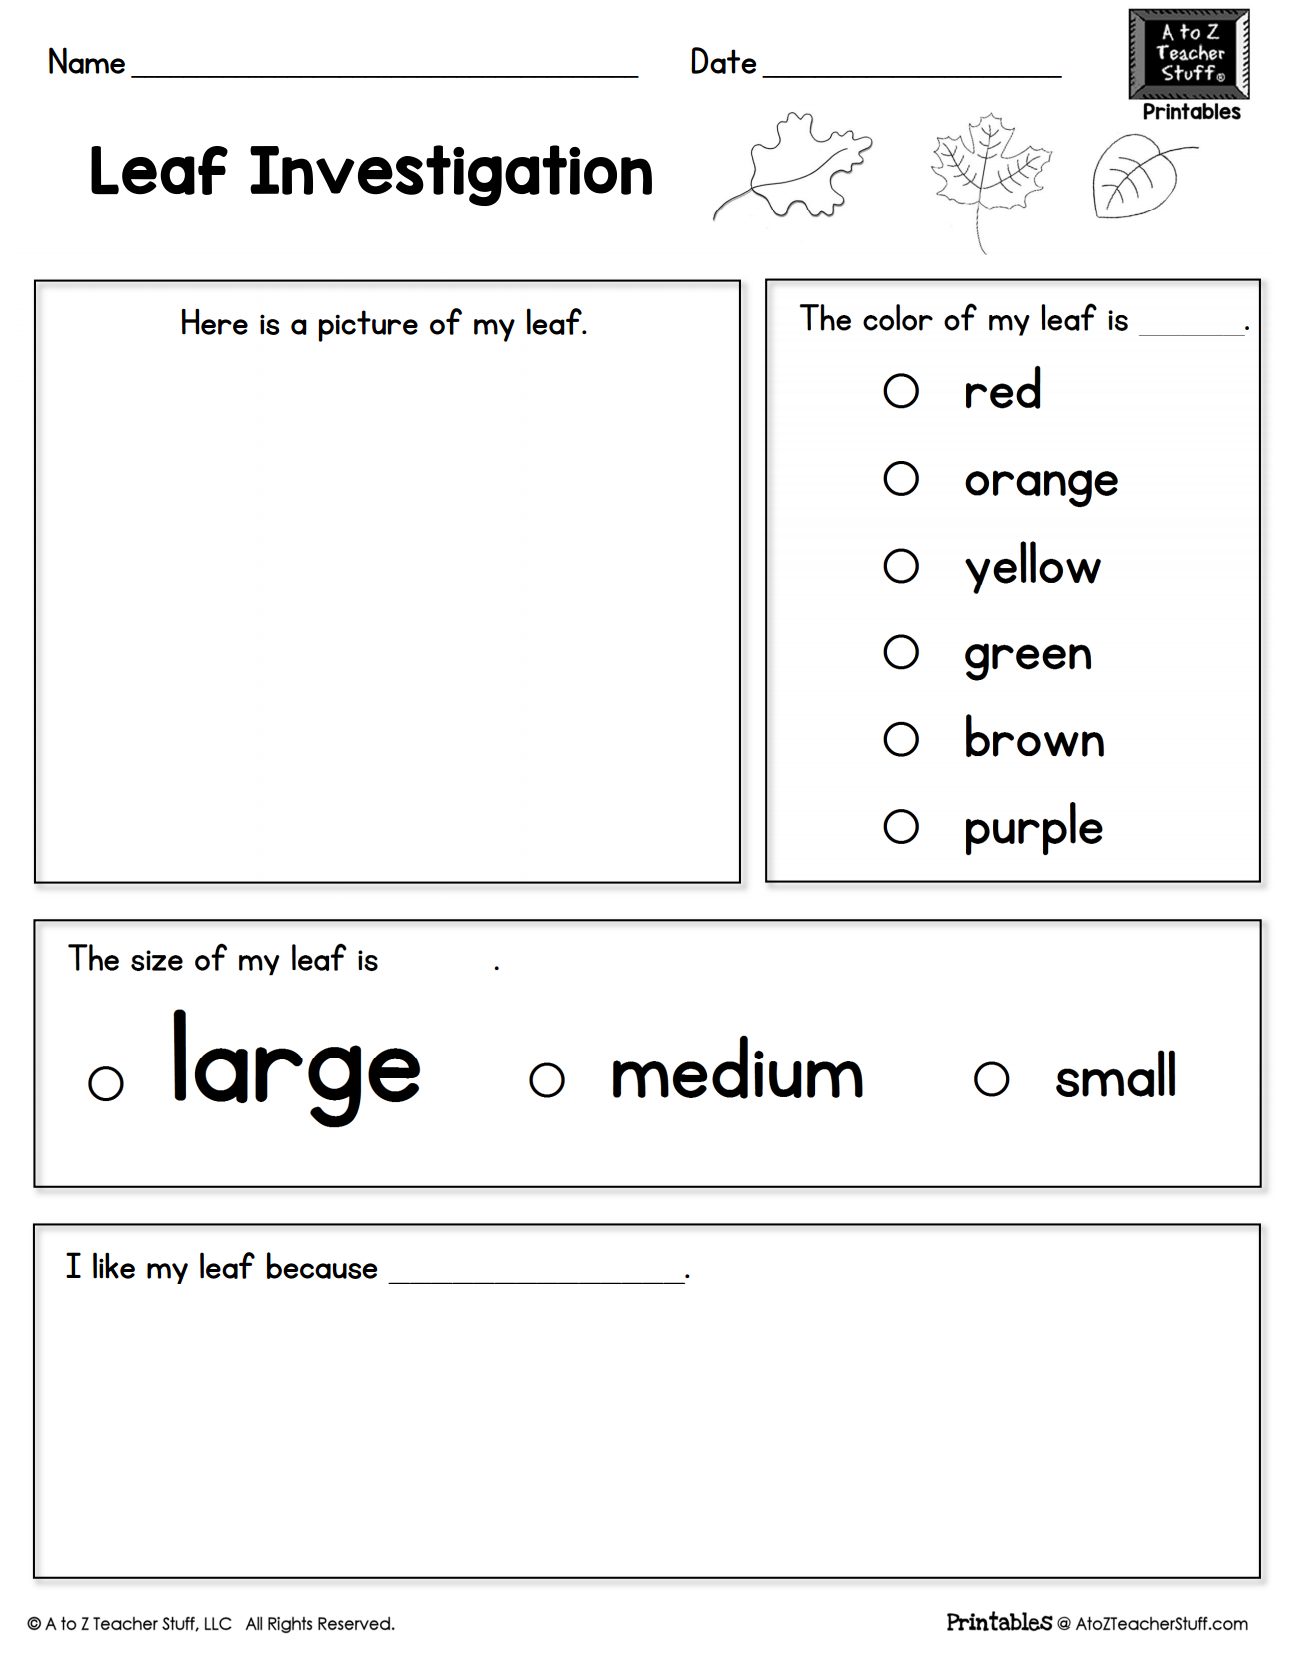 Worksheets Perimeter Worksheets 4th Grade area and perimeter worksheets printables a to z teacher stuff leaf investigation printable worksheet